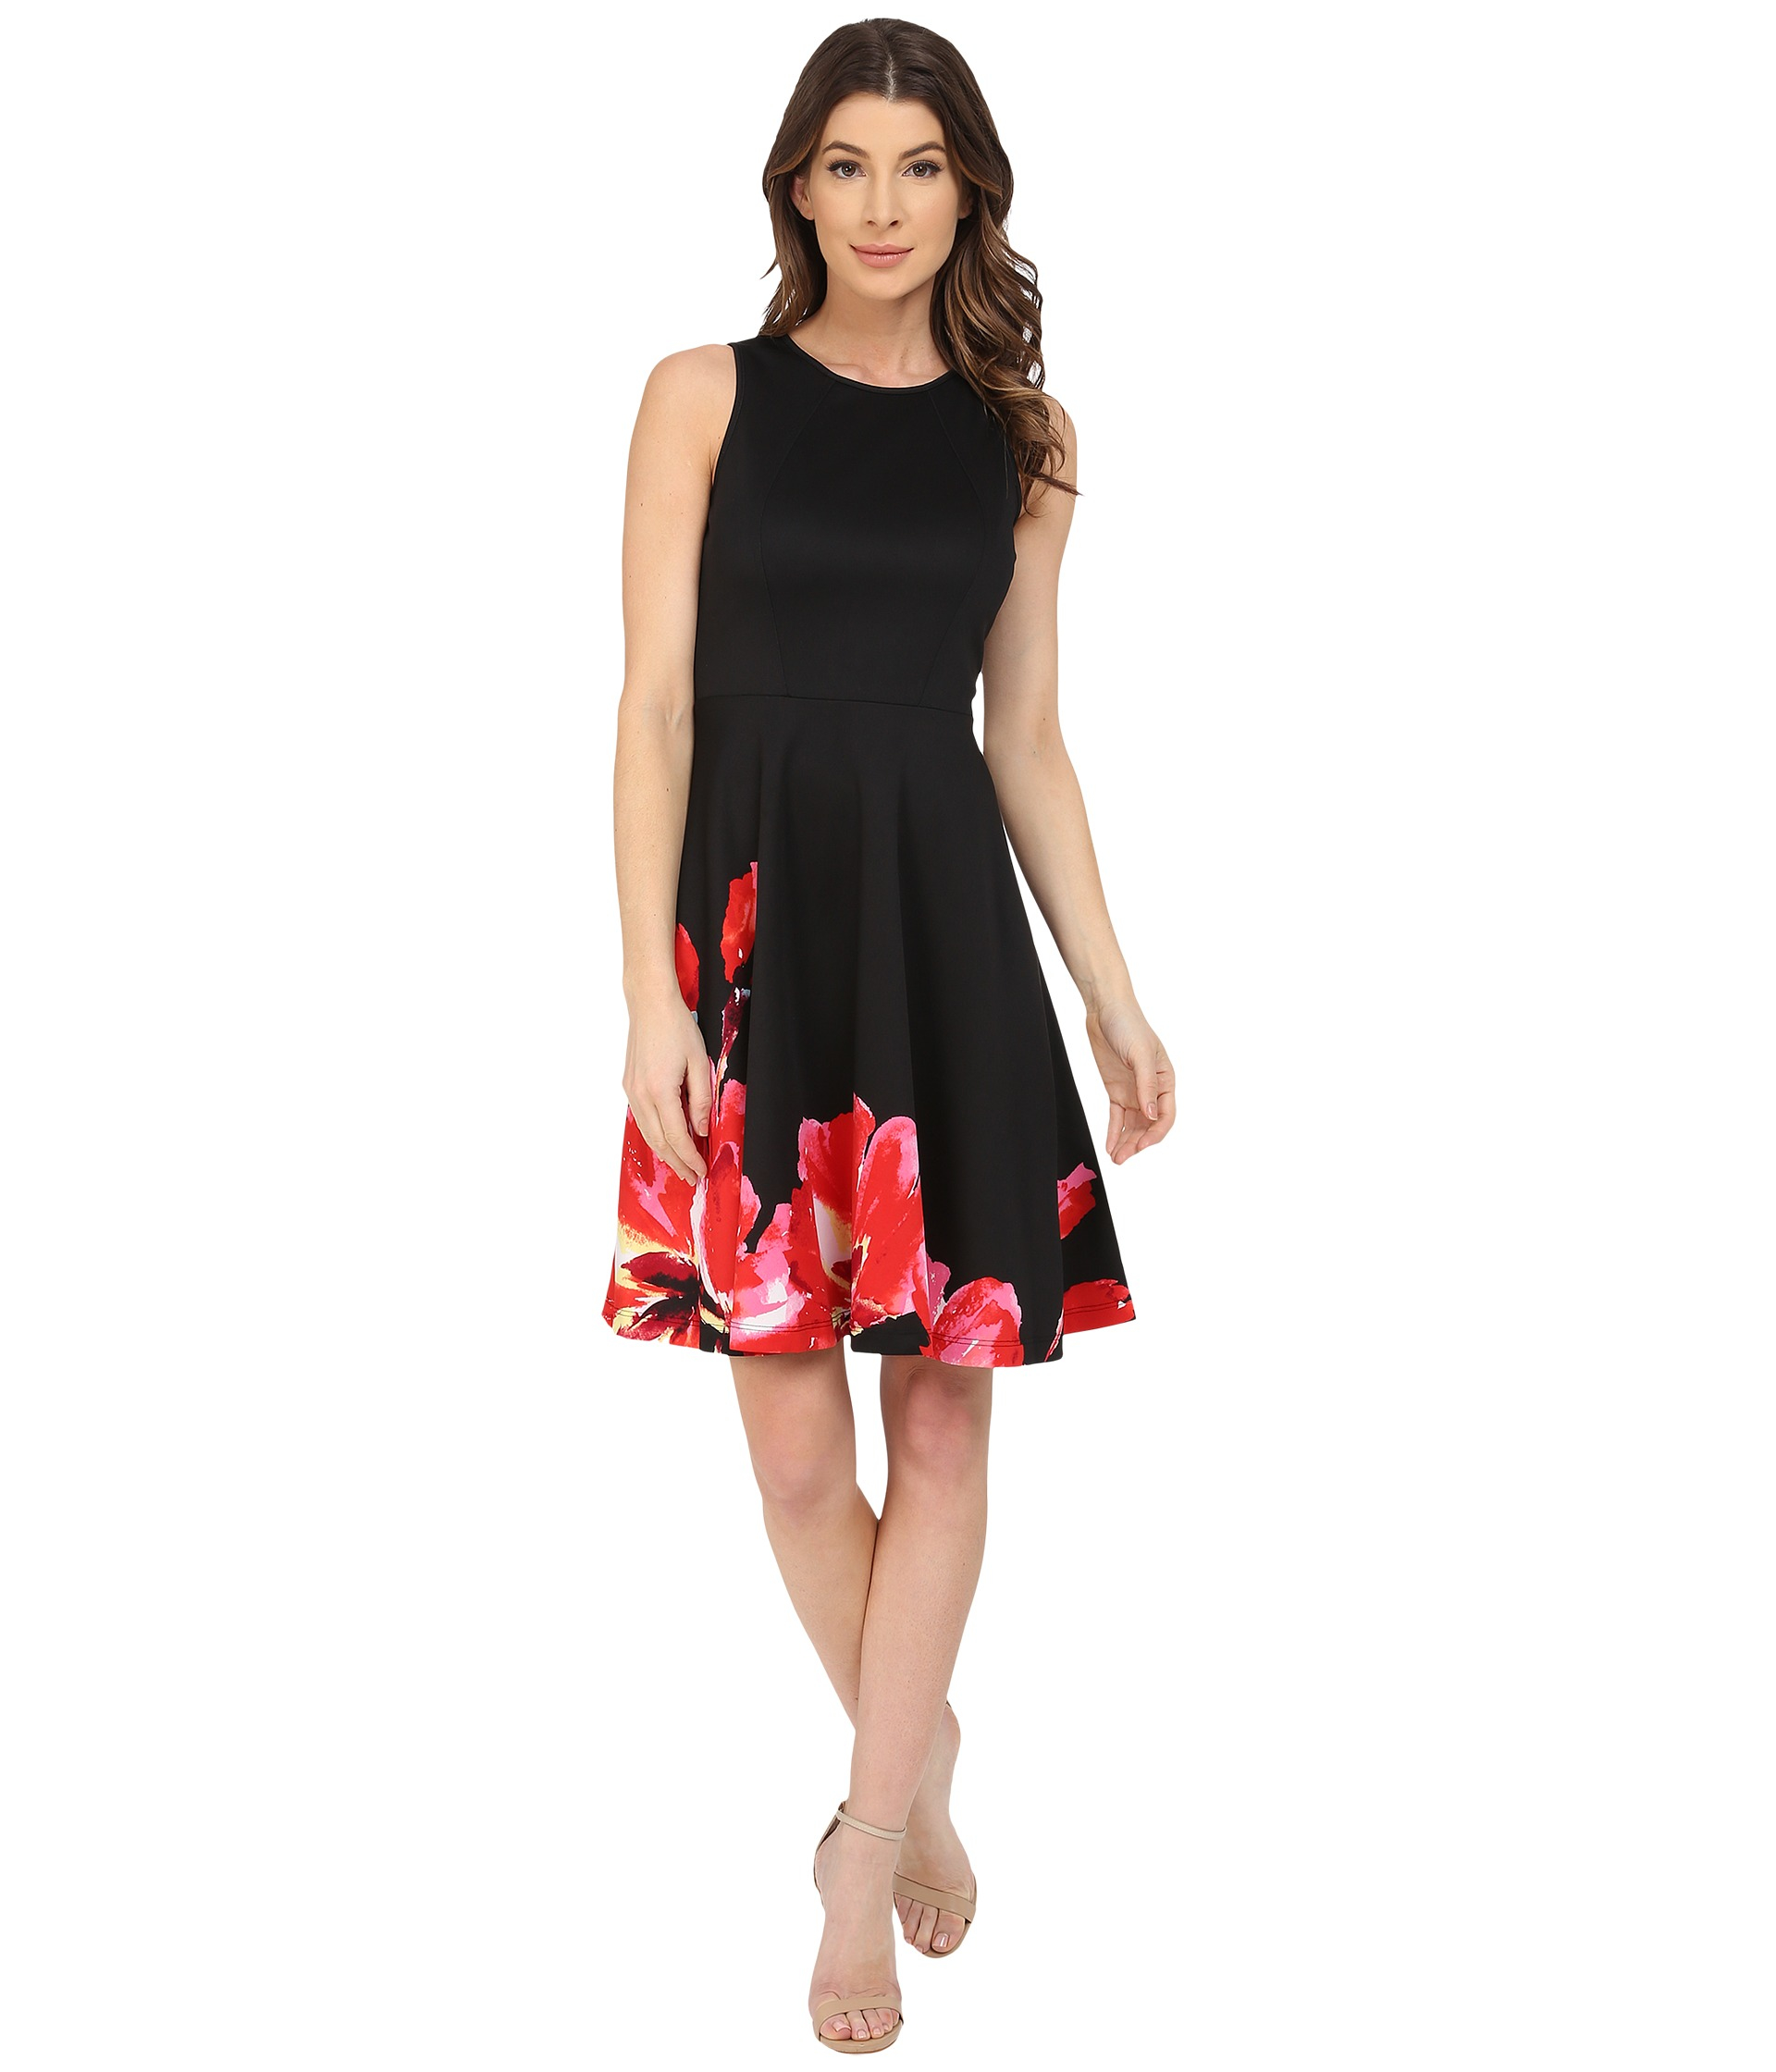 For warmer events, our scuba and crepe cocktail dresses are perfect. These light fabrics are versatile and can take you from season to season. In a variety of colors and prints, there is a lace cocktail dress for all occasions and seasons.